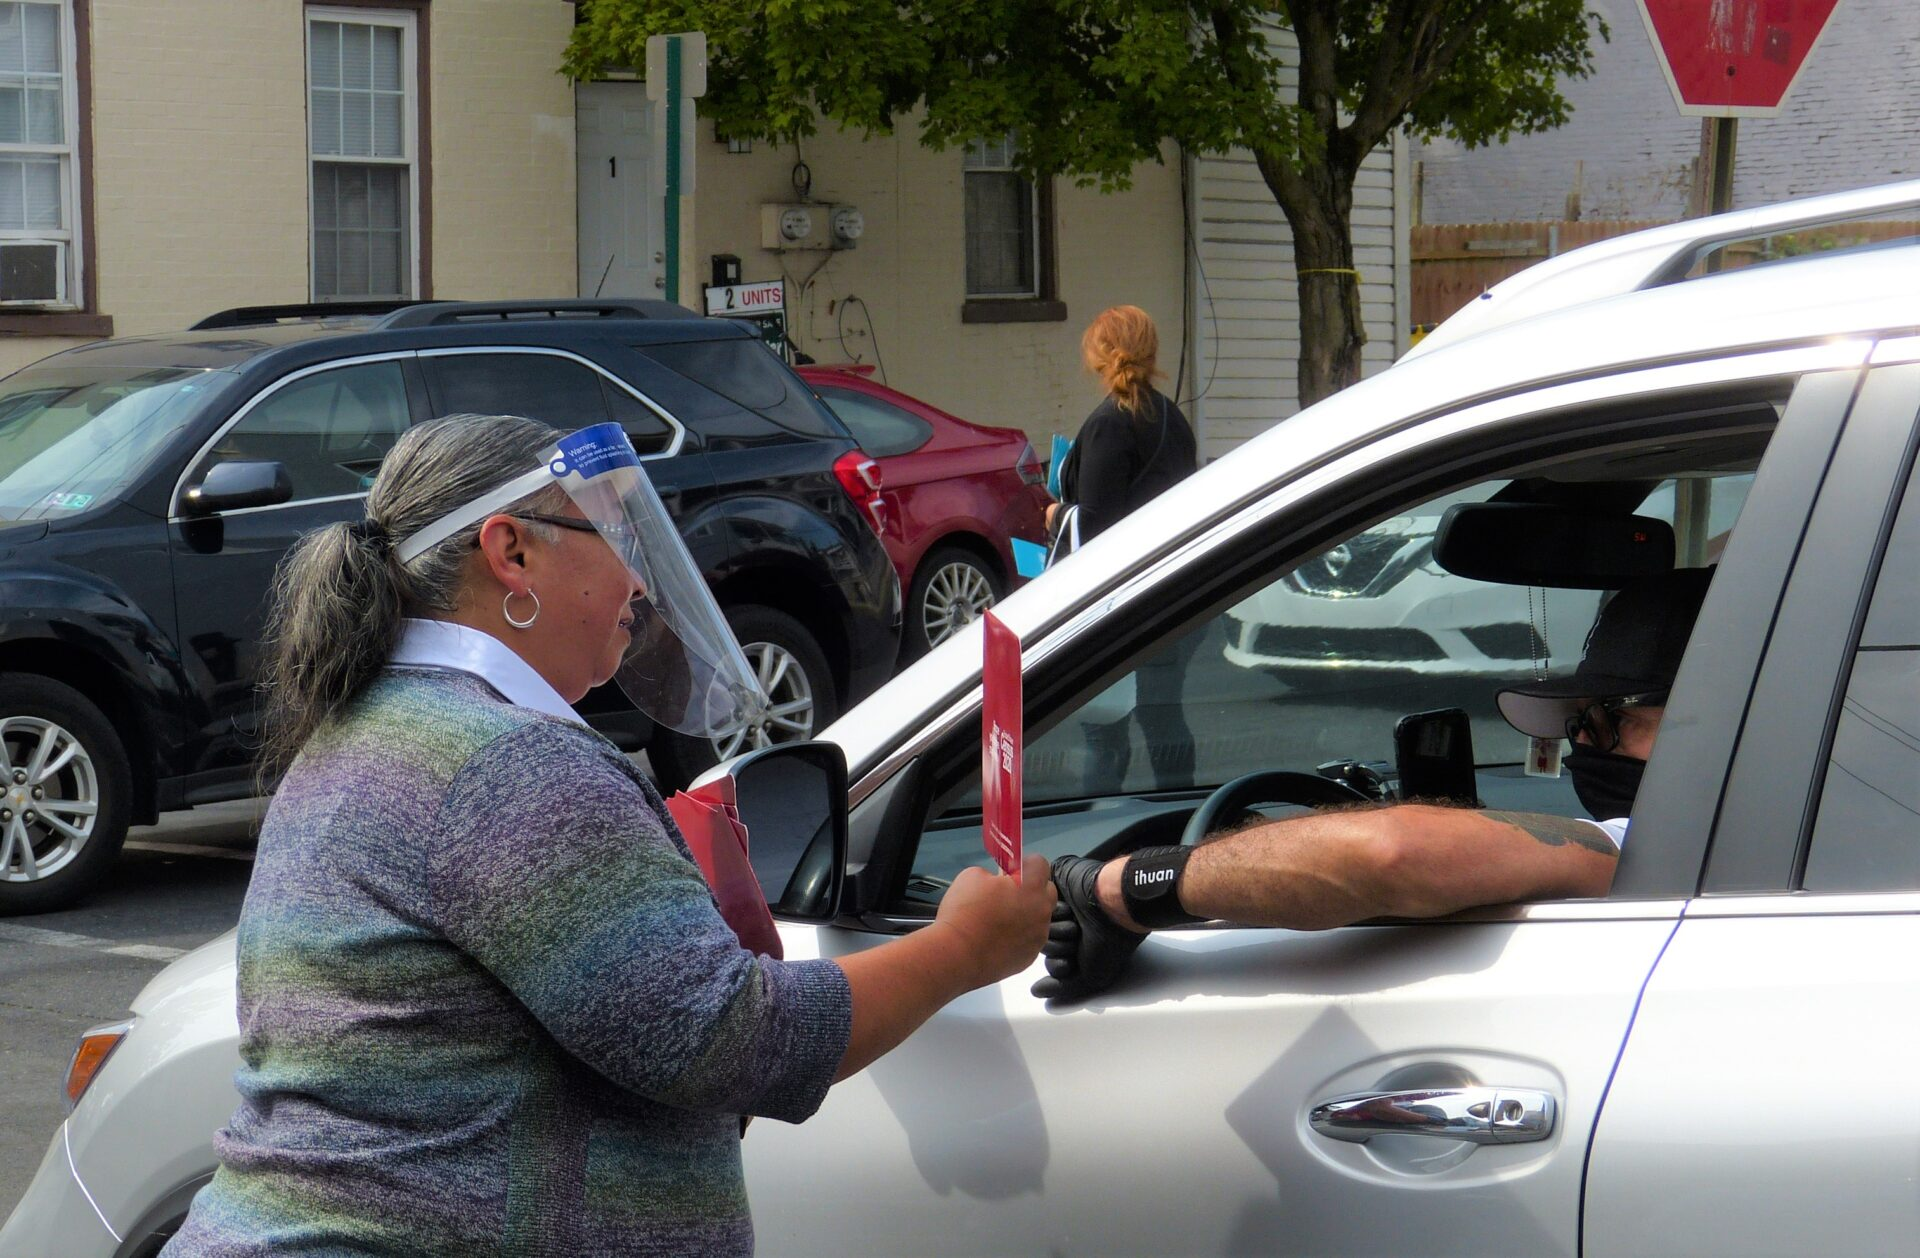 Volunteer Lori Pagan hands out Census materials at the corner of St. Joseph and New Dorwart streets in Lancaster on Friday, Sept. 25, 2020. (Photo: Tim Stuhldreher)